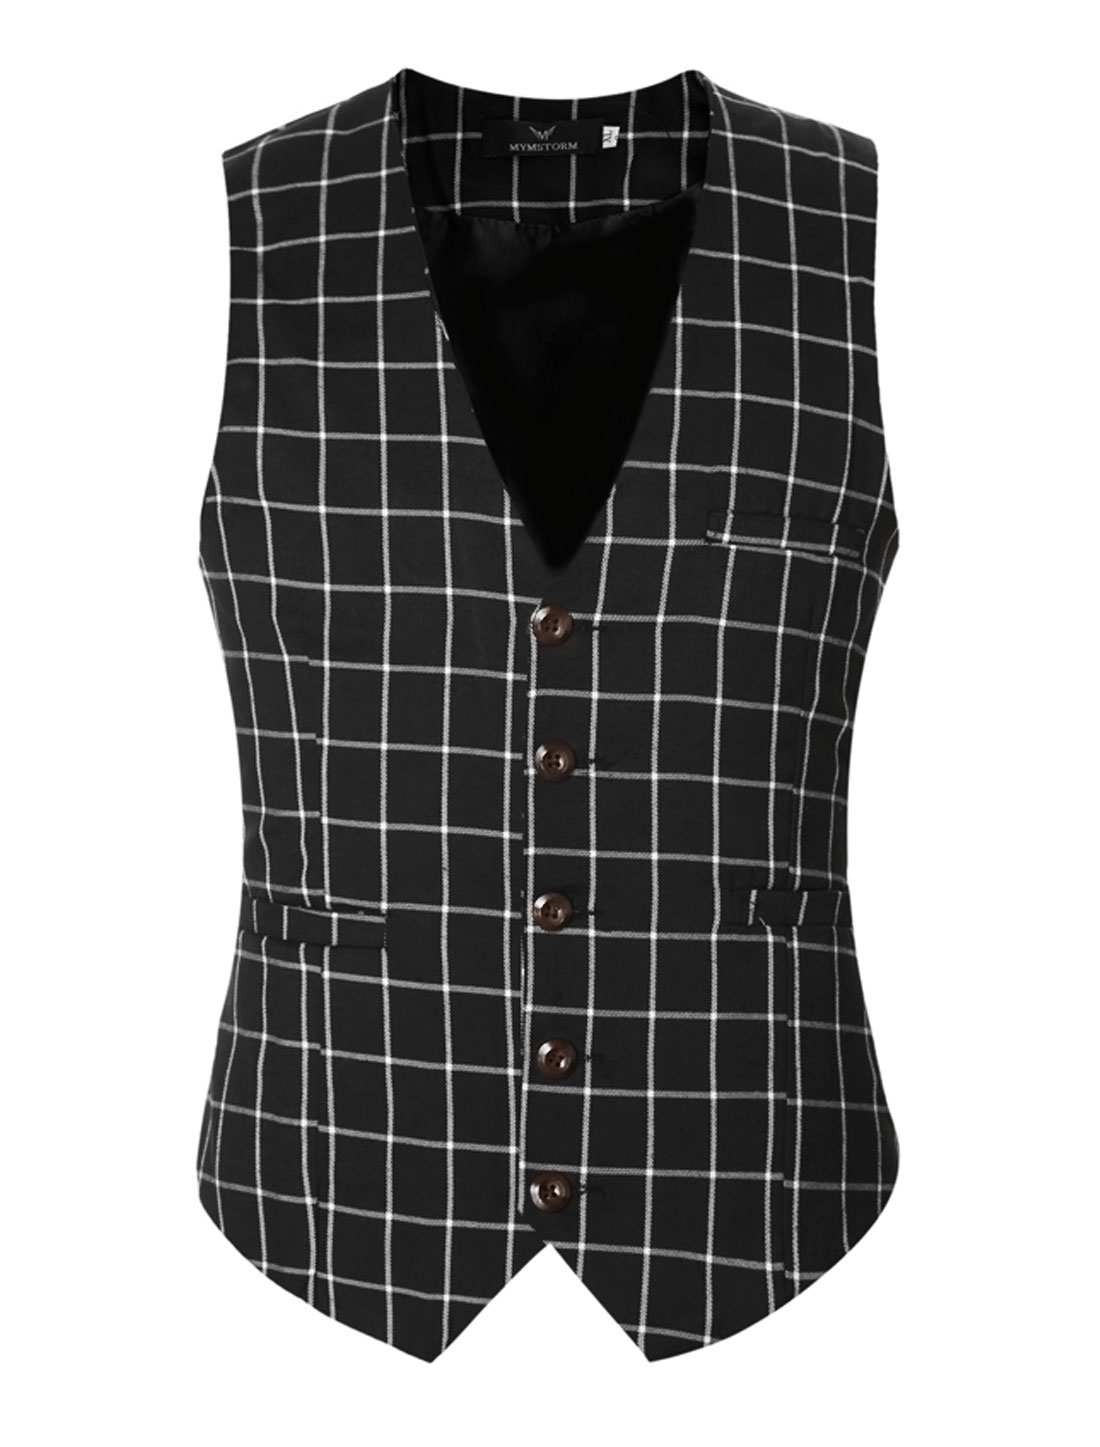 Men V Neck Checks Adjustable Buckle Back Slim Fit Vest Black M